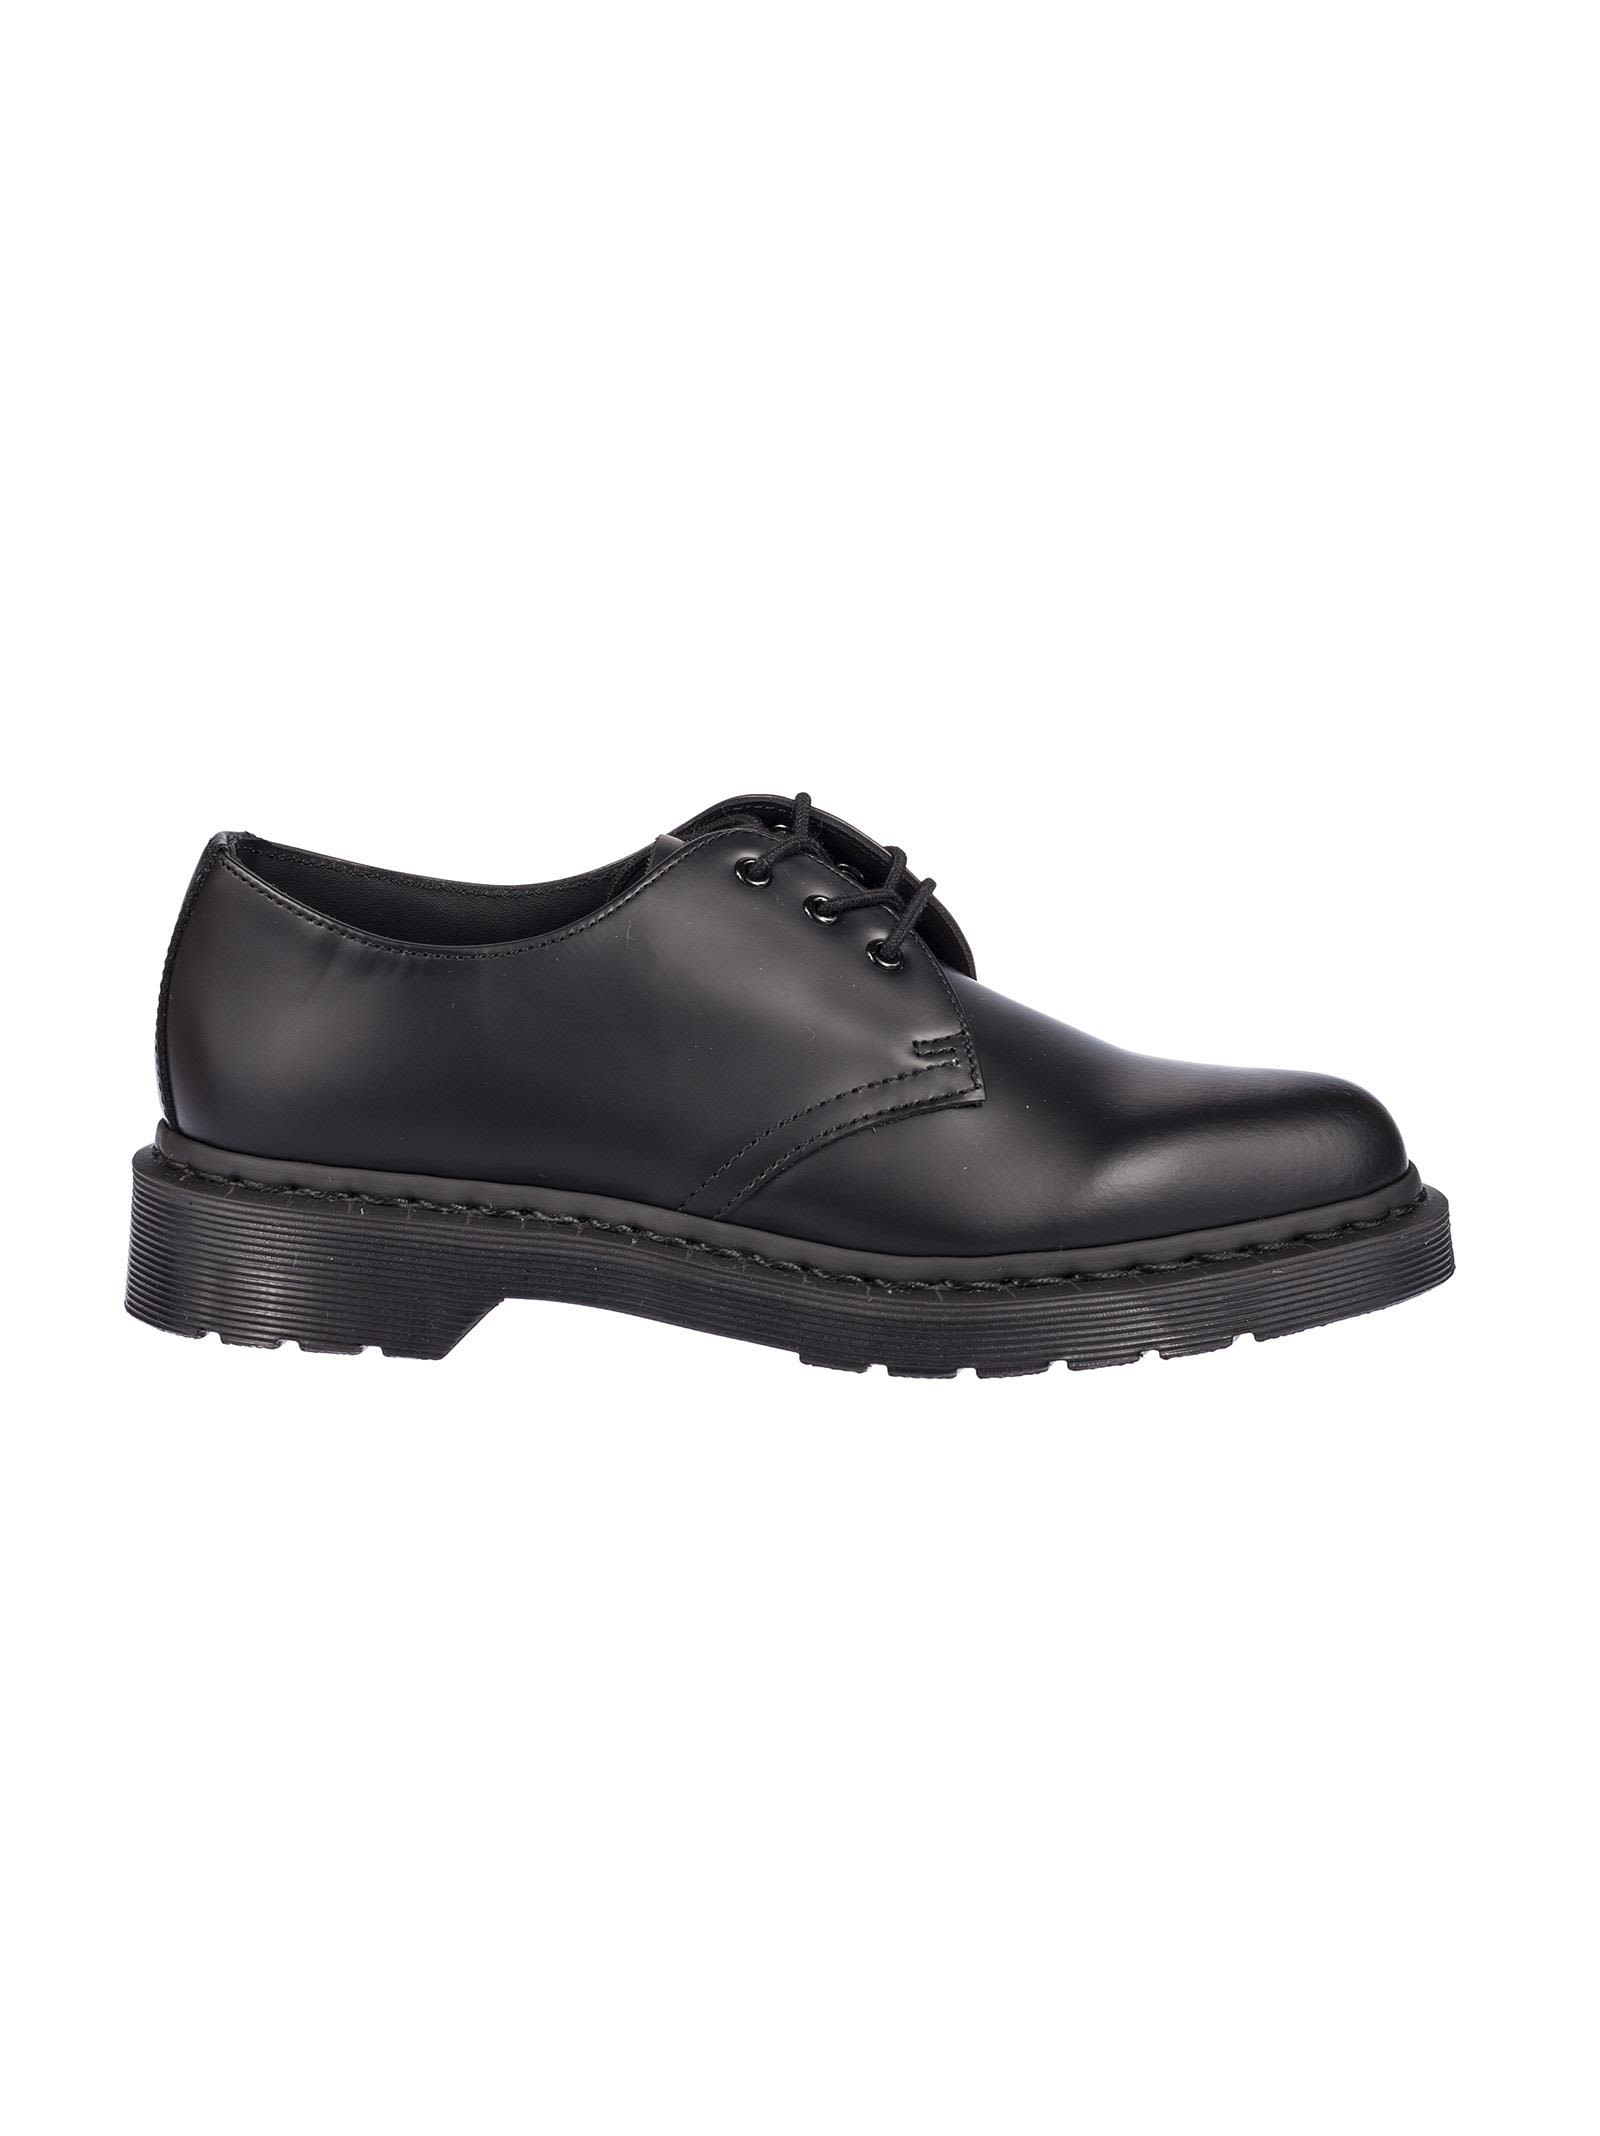 Dr. Martens 1461 Smooth Lace-up Shoes